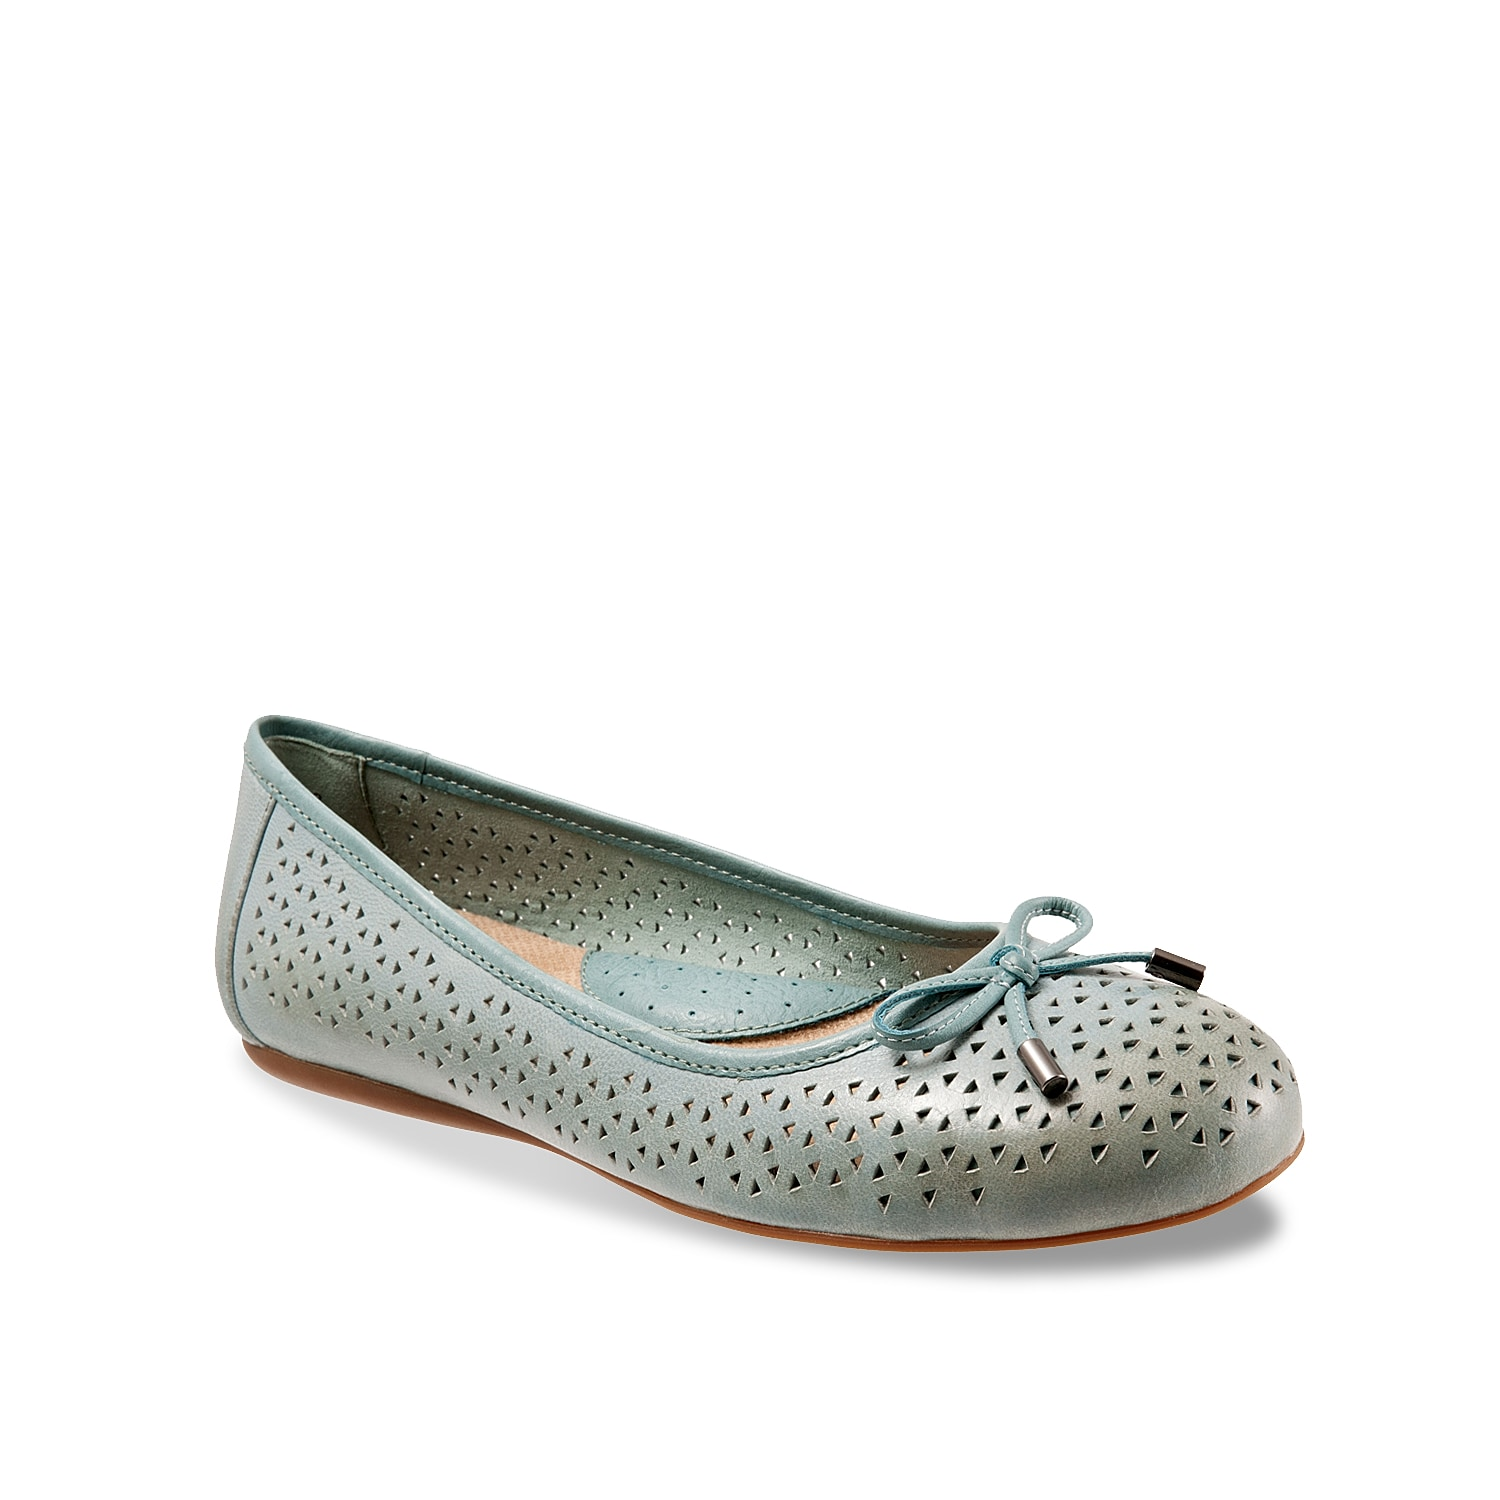 Keep a pair of ballet flats at the front of your closet for endless style transformations! The Softwalk Napa slip-on is fashioned with geometric laser cuts and a delicate bow detail.